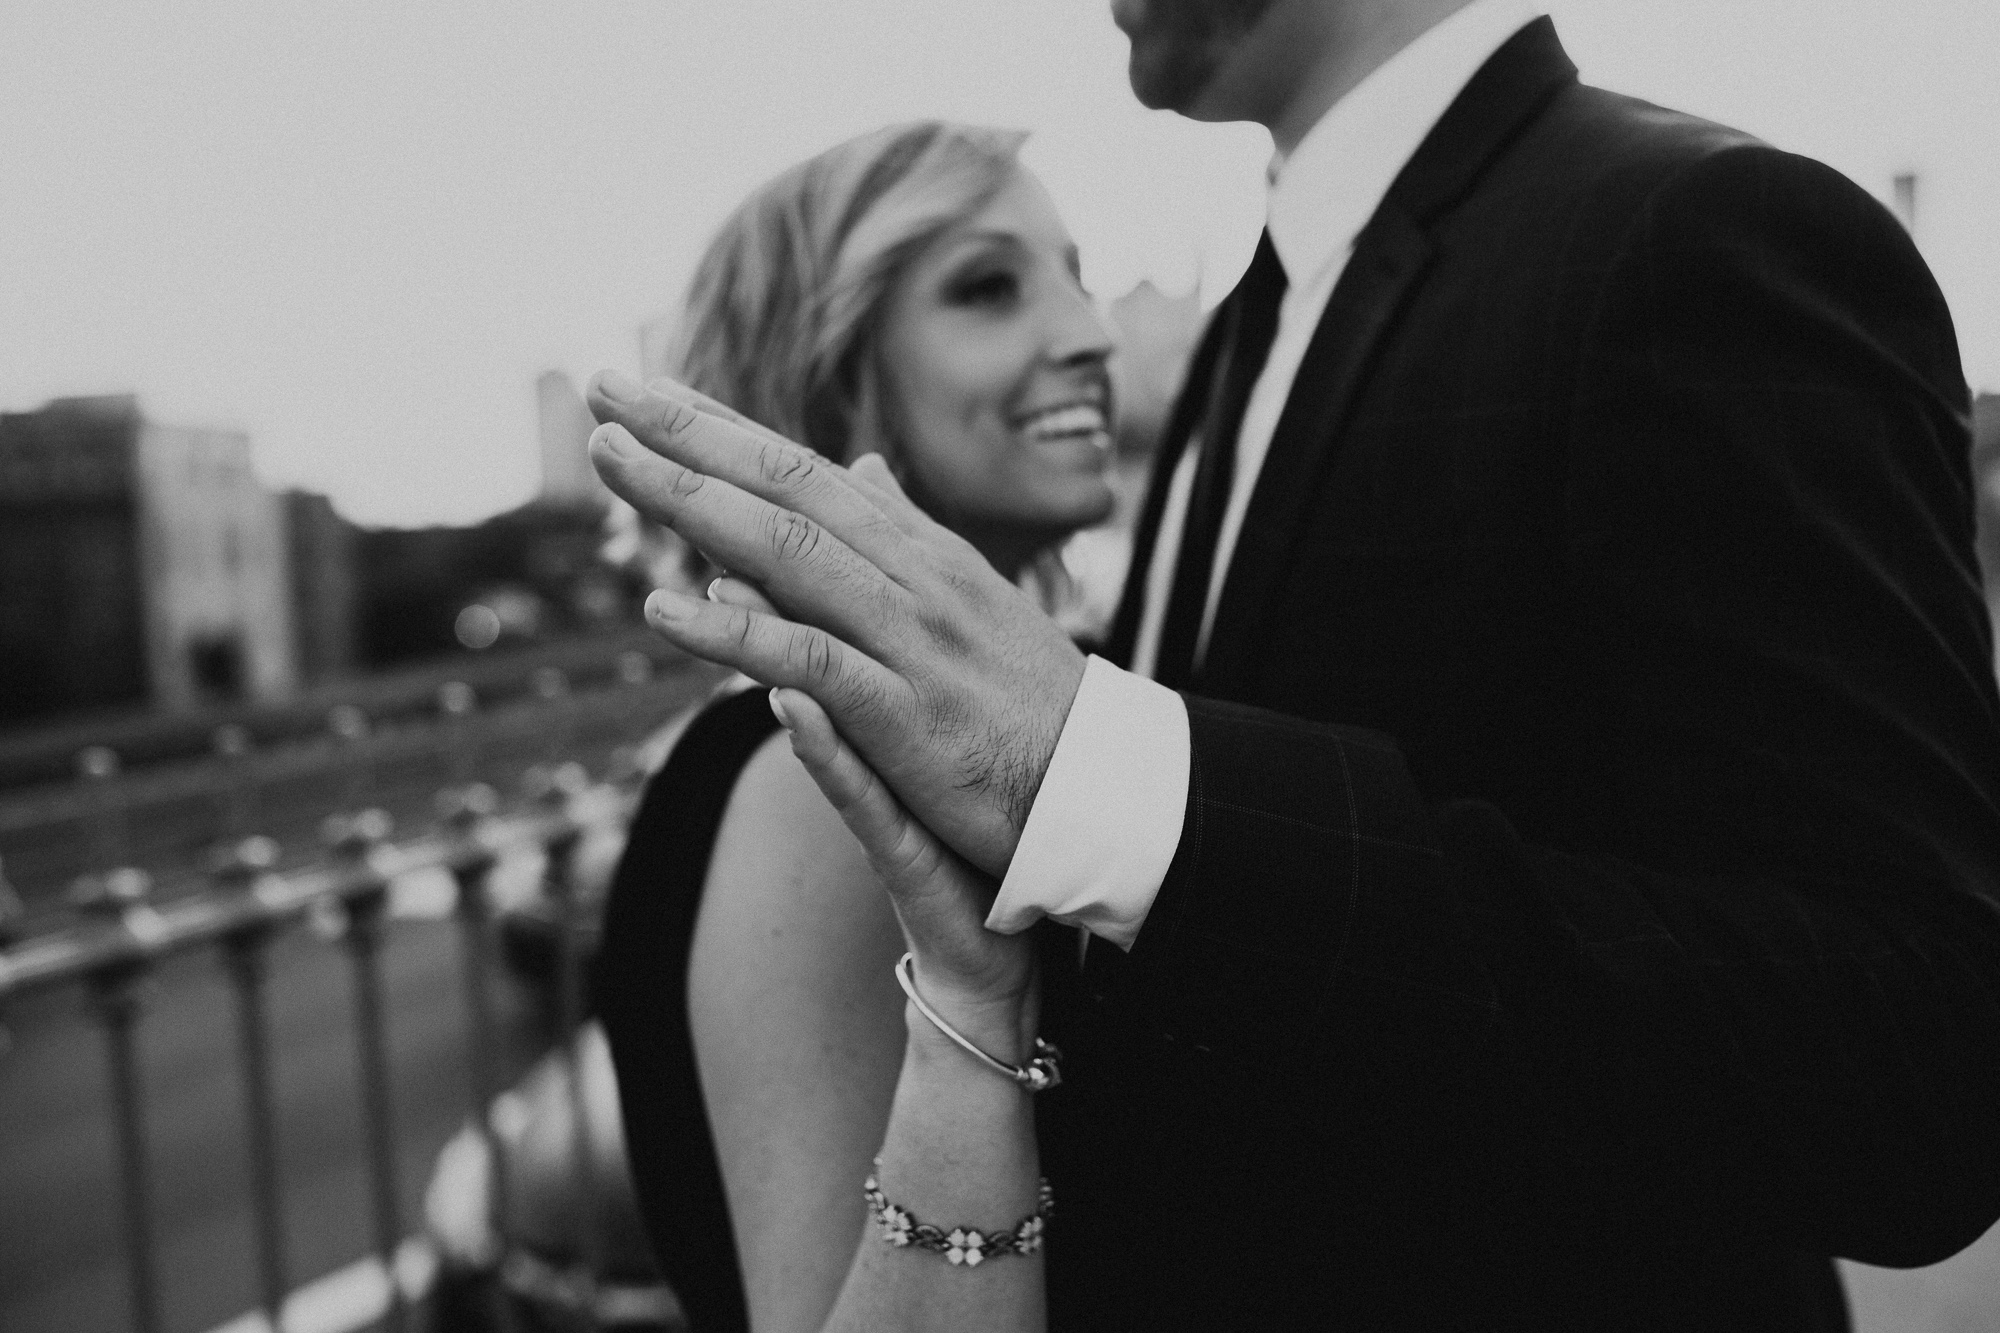 brooklyn_nyc_engagement_photography-65-of-83.jpg